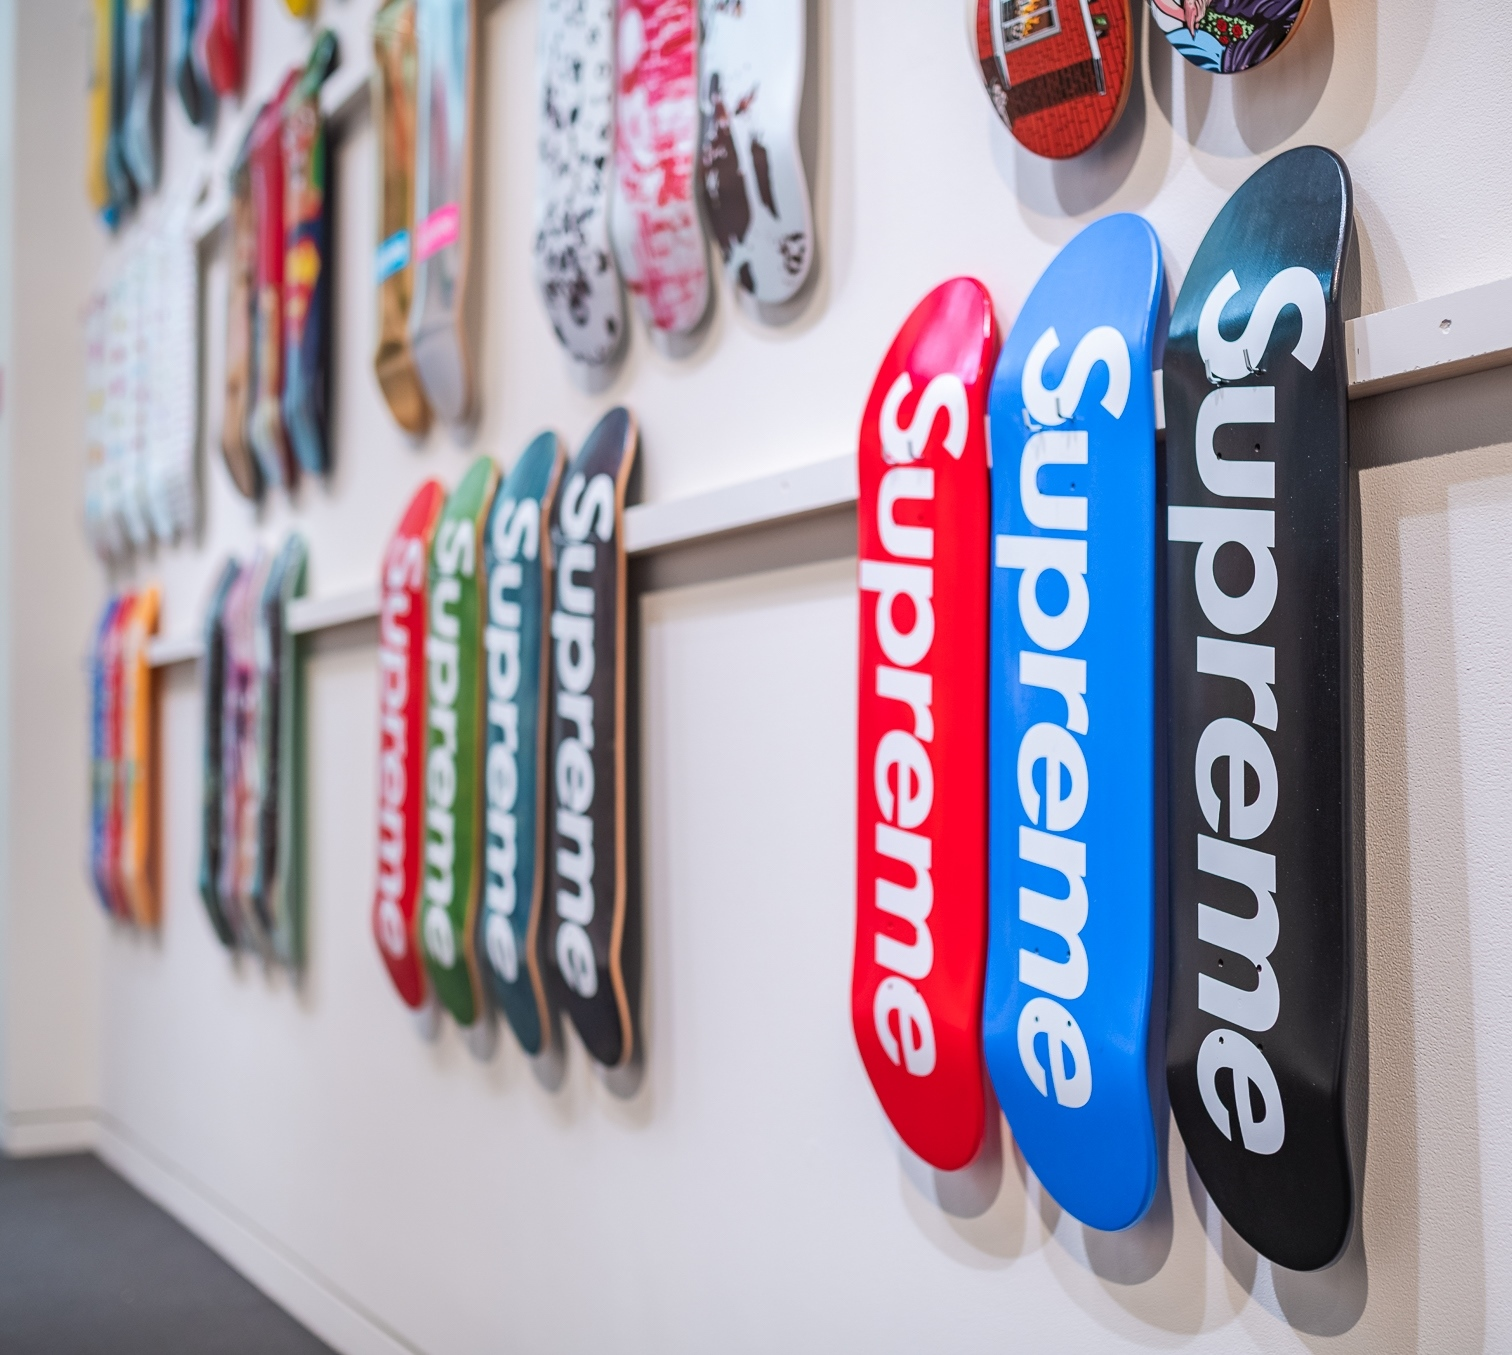 A Teenage Art Collector Is About to Make Vancouver a Destination for Skate Nerds